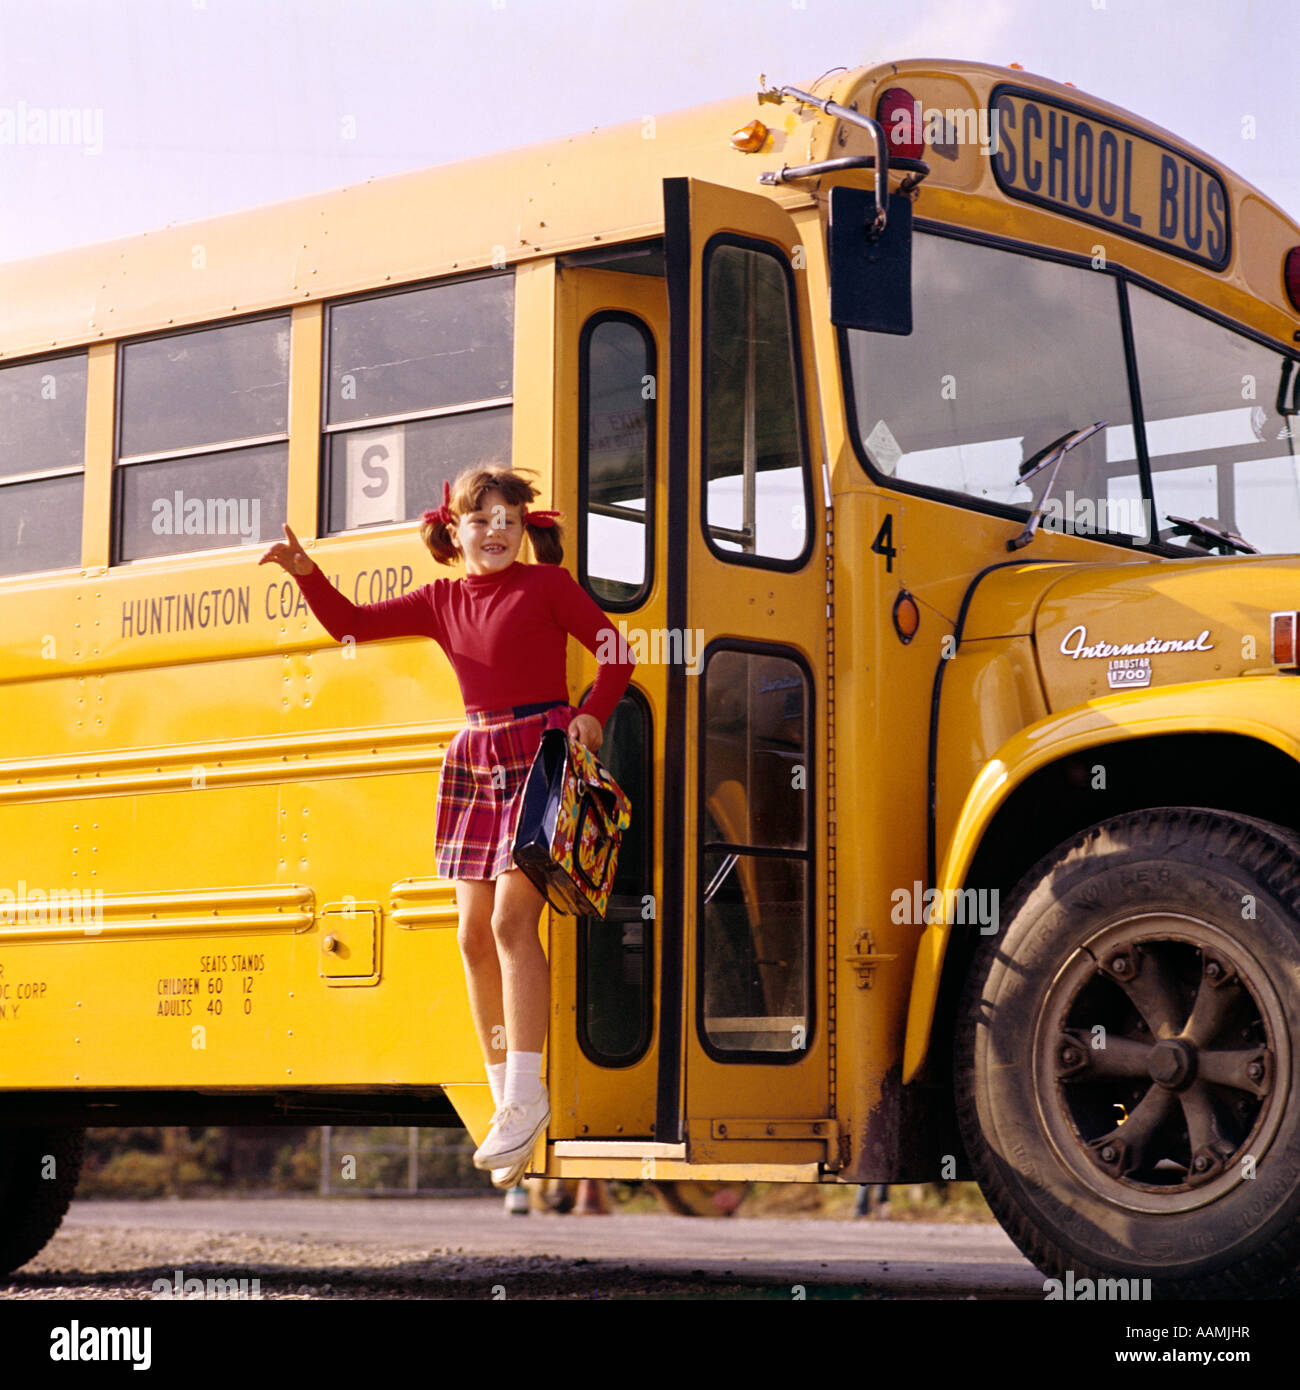 1970s 1980s LITTLE GIRL PIGTAILS RED TOP PLAID SKIRT JUMPS OFF YELLOW SCHOOL BUS SNEAKERS BOOK BAG HAPPY FUN COME HOME